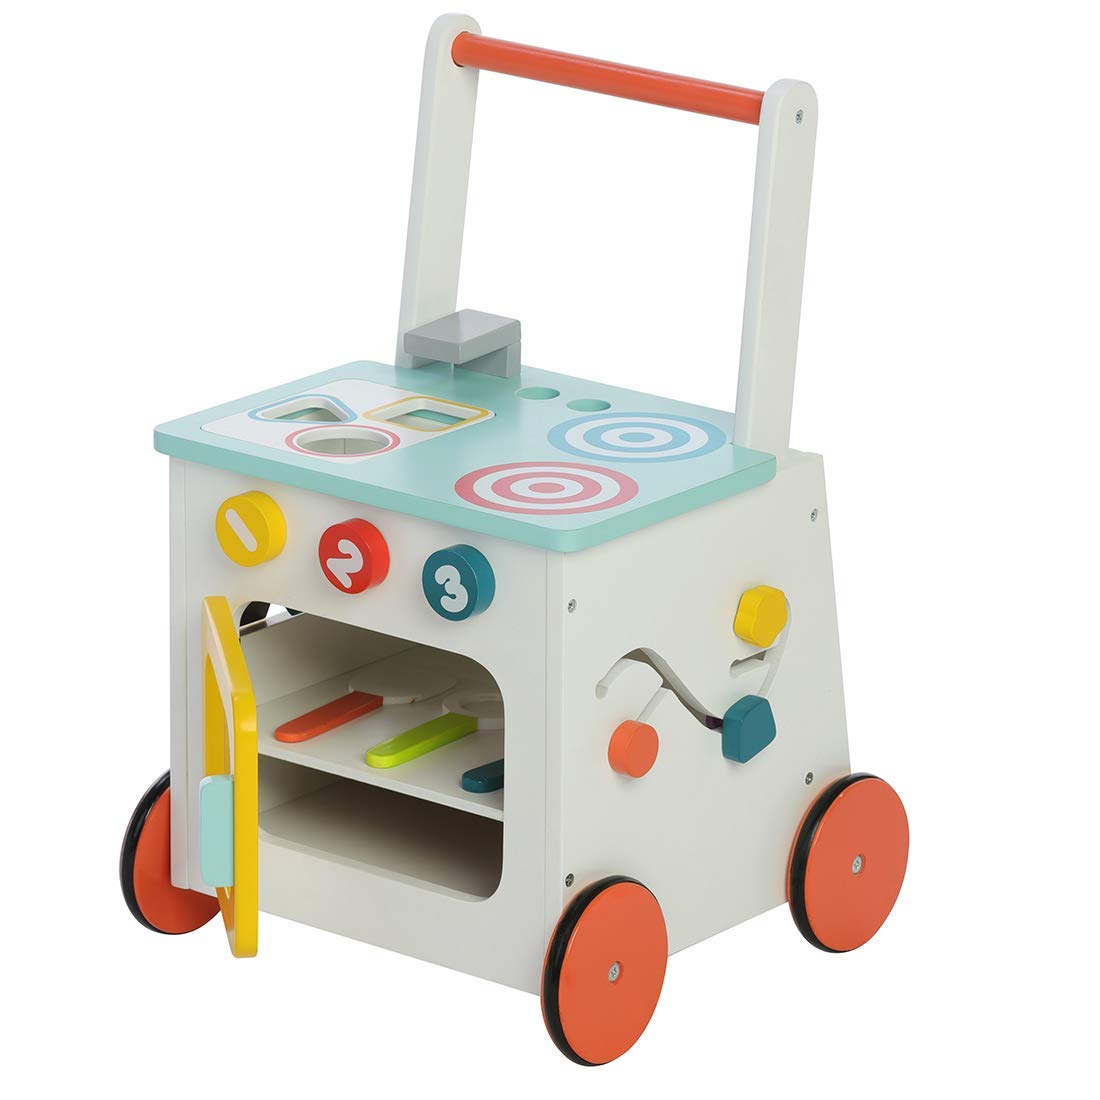 Hessie 2-in-1 Little Play Kitchen Wooden Push Walker, Baby Learning Walker Toddler Toys 1 Year Old